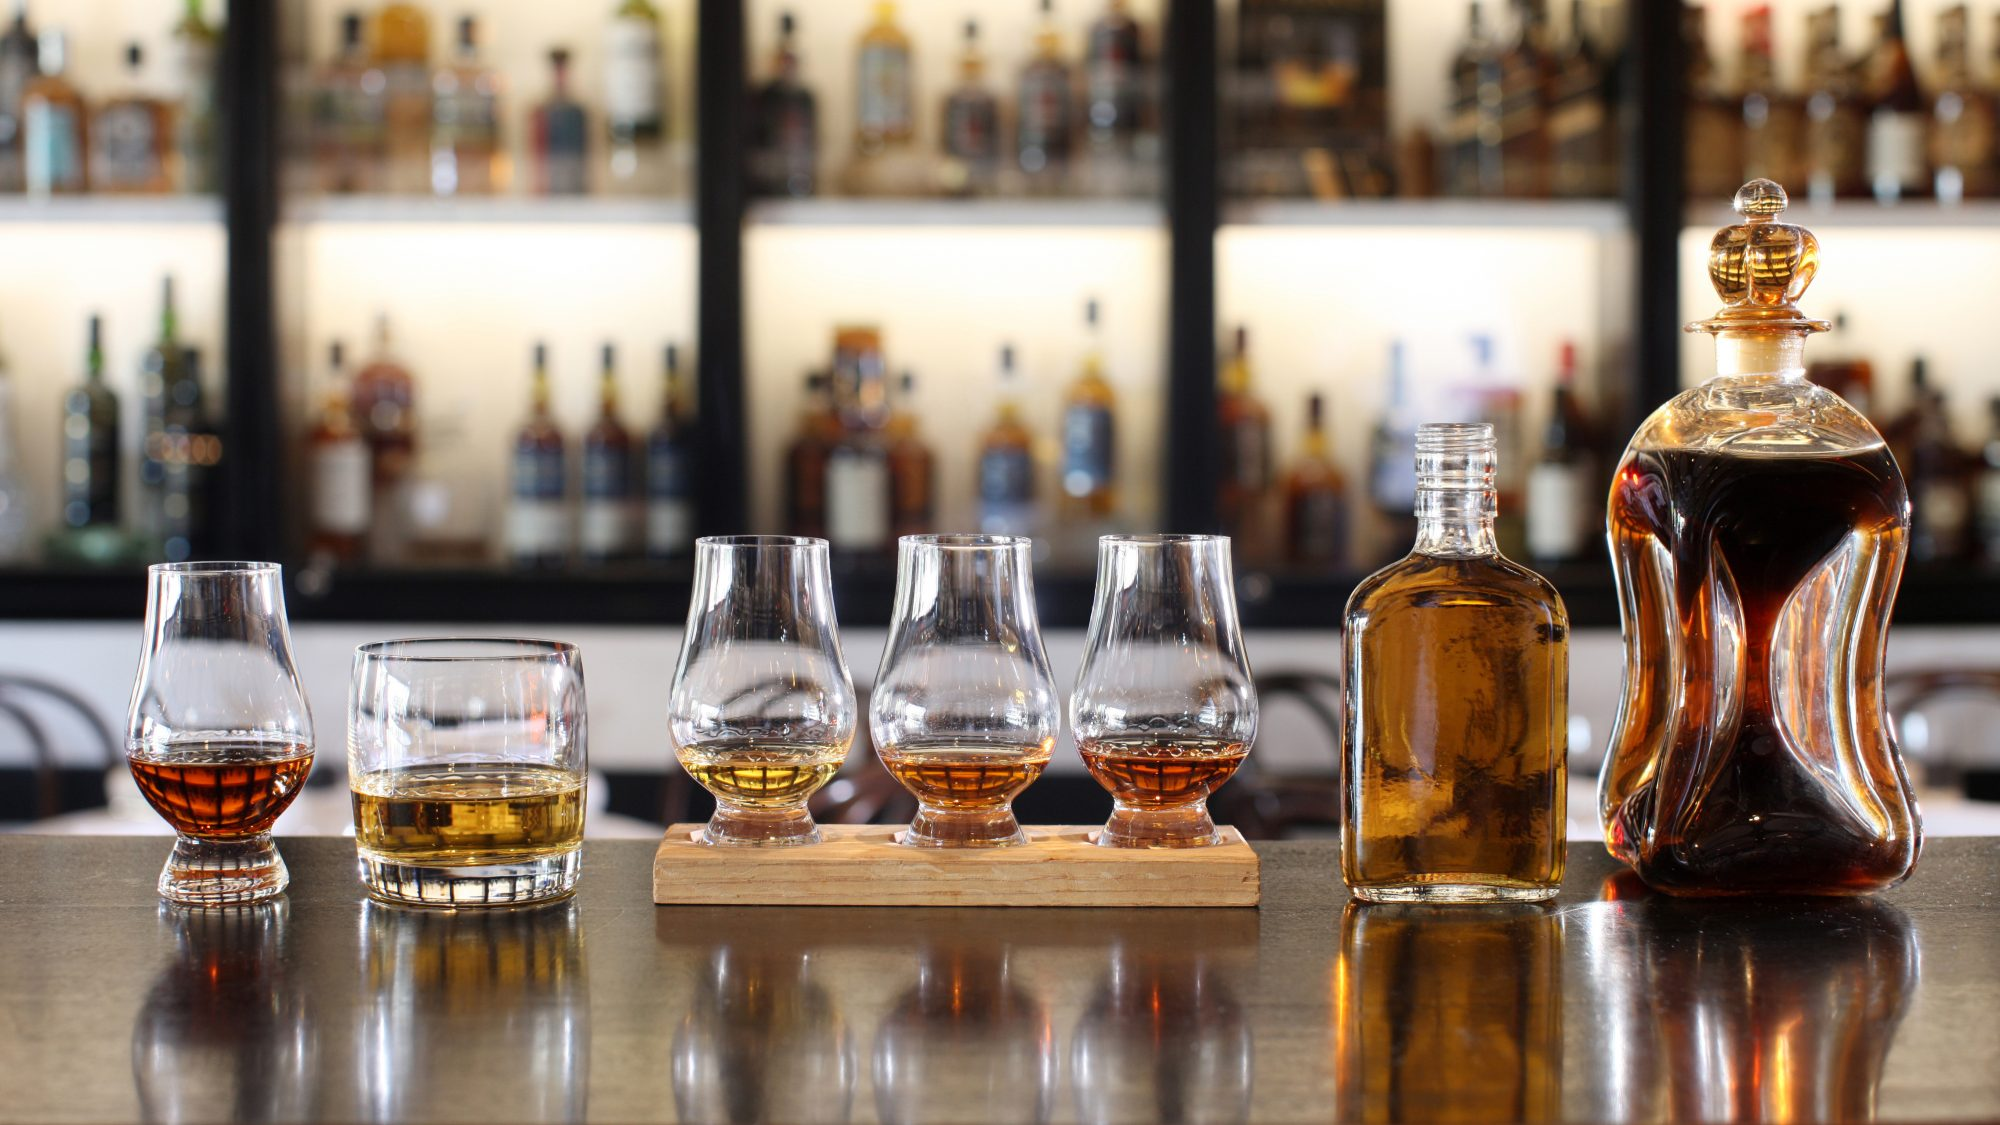 8 Best Places for Scotch Whisky in NYC